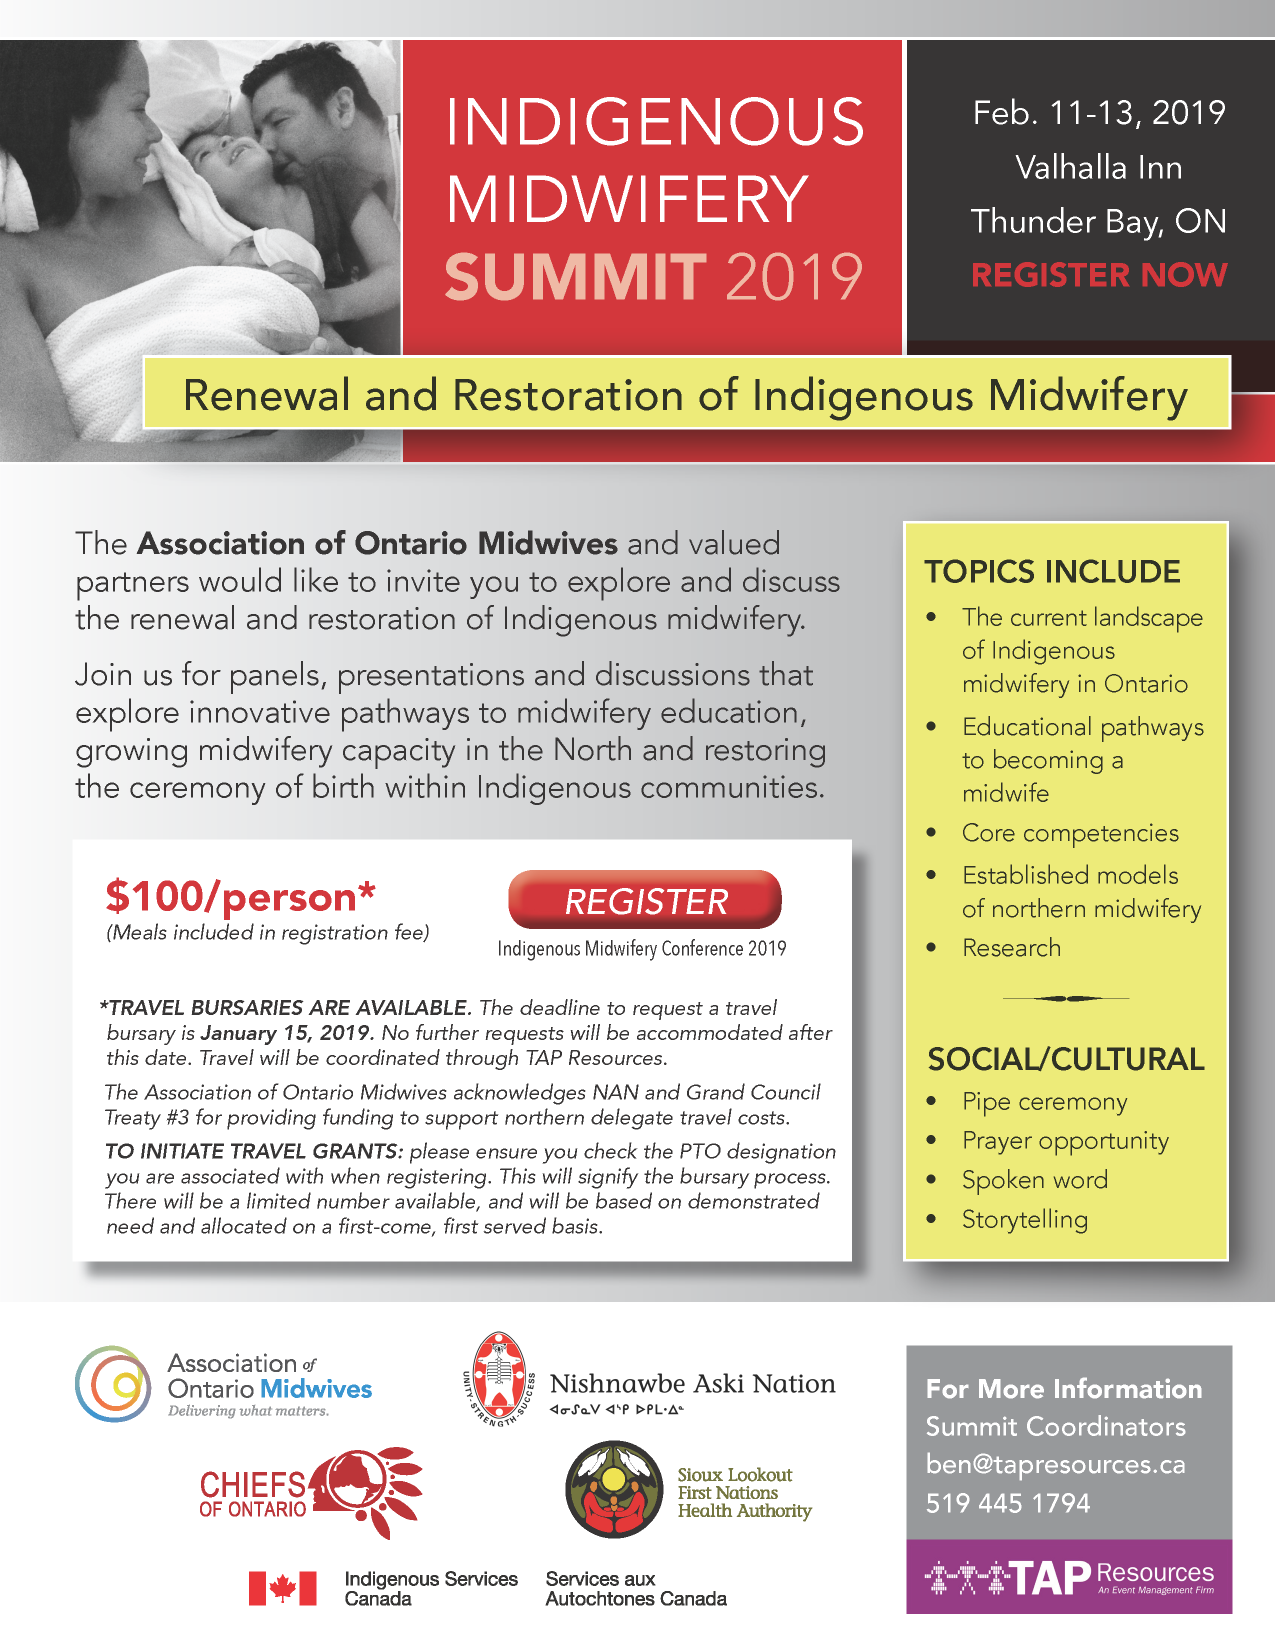 Indigenous Midwifery Summit 2019